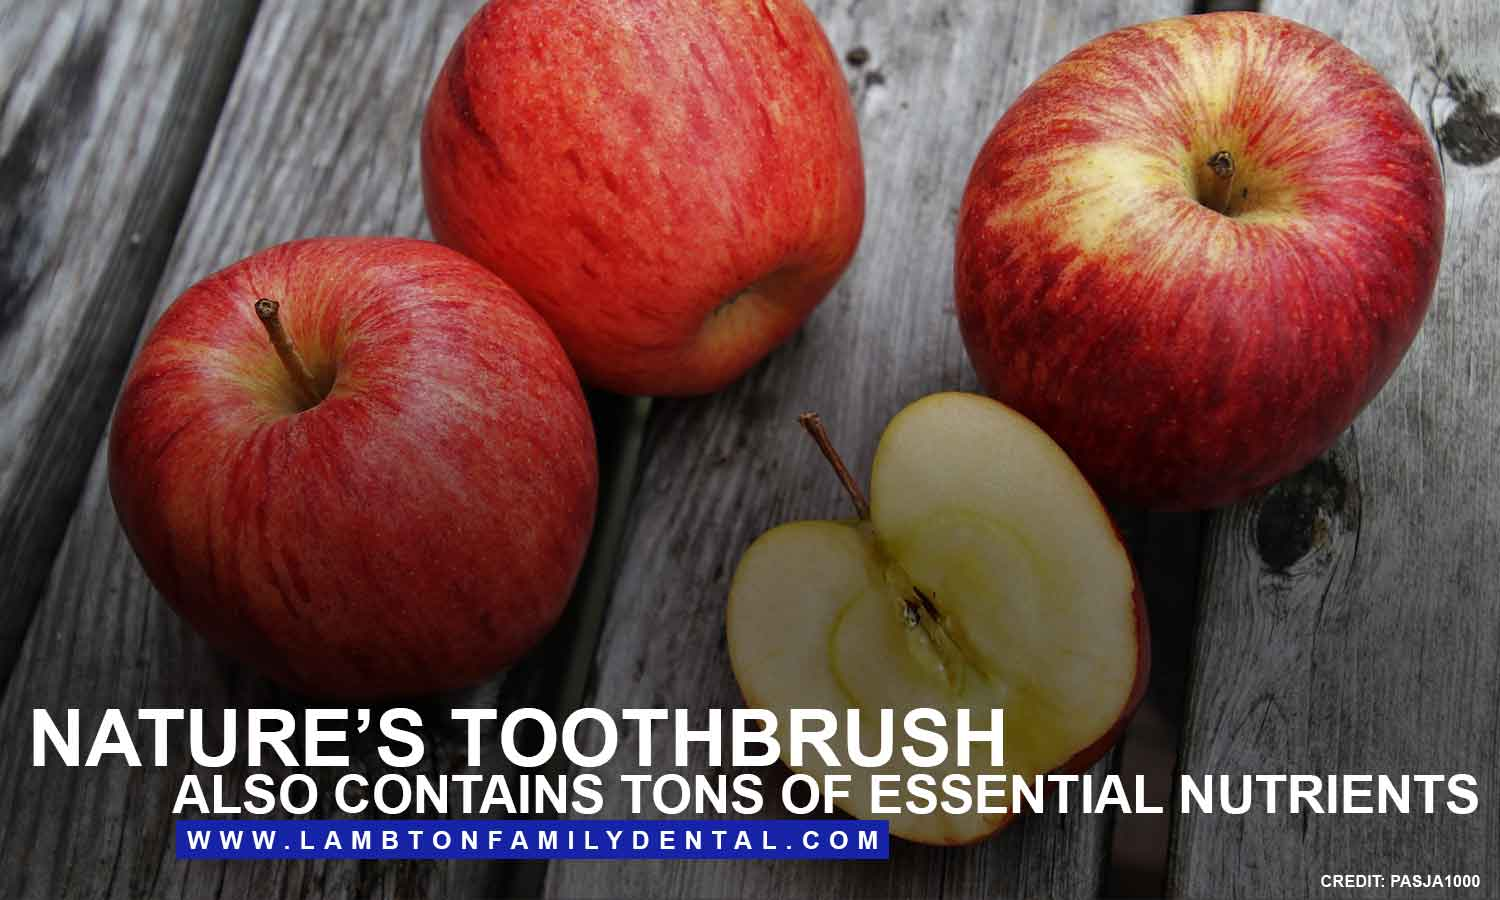 Nature's toothbrush also contains tons of essential nutrients